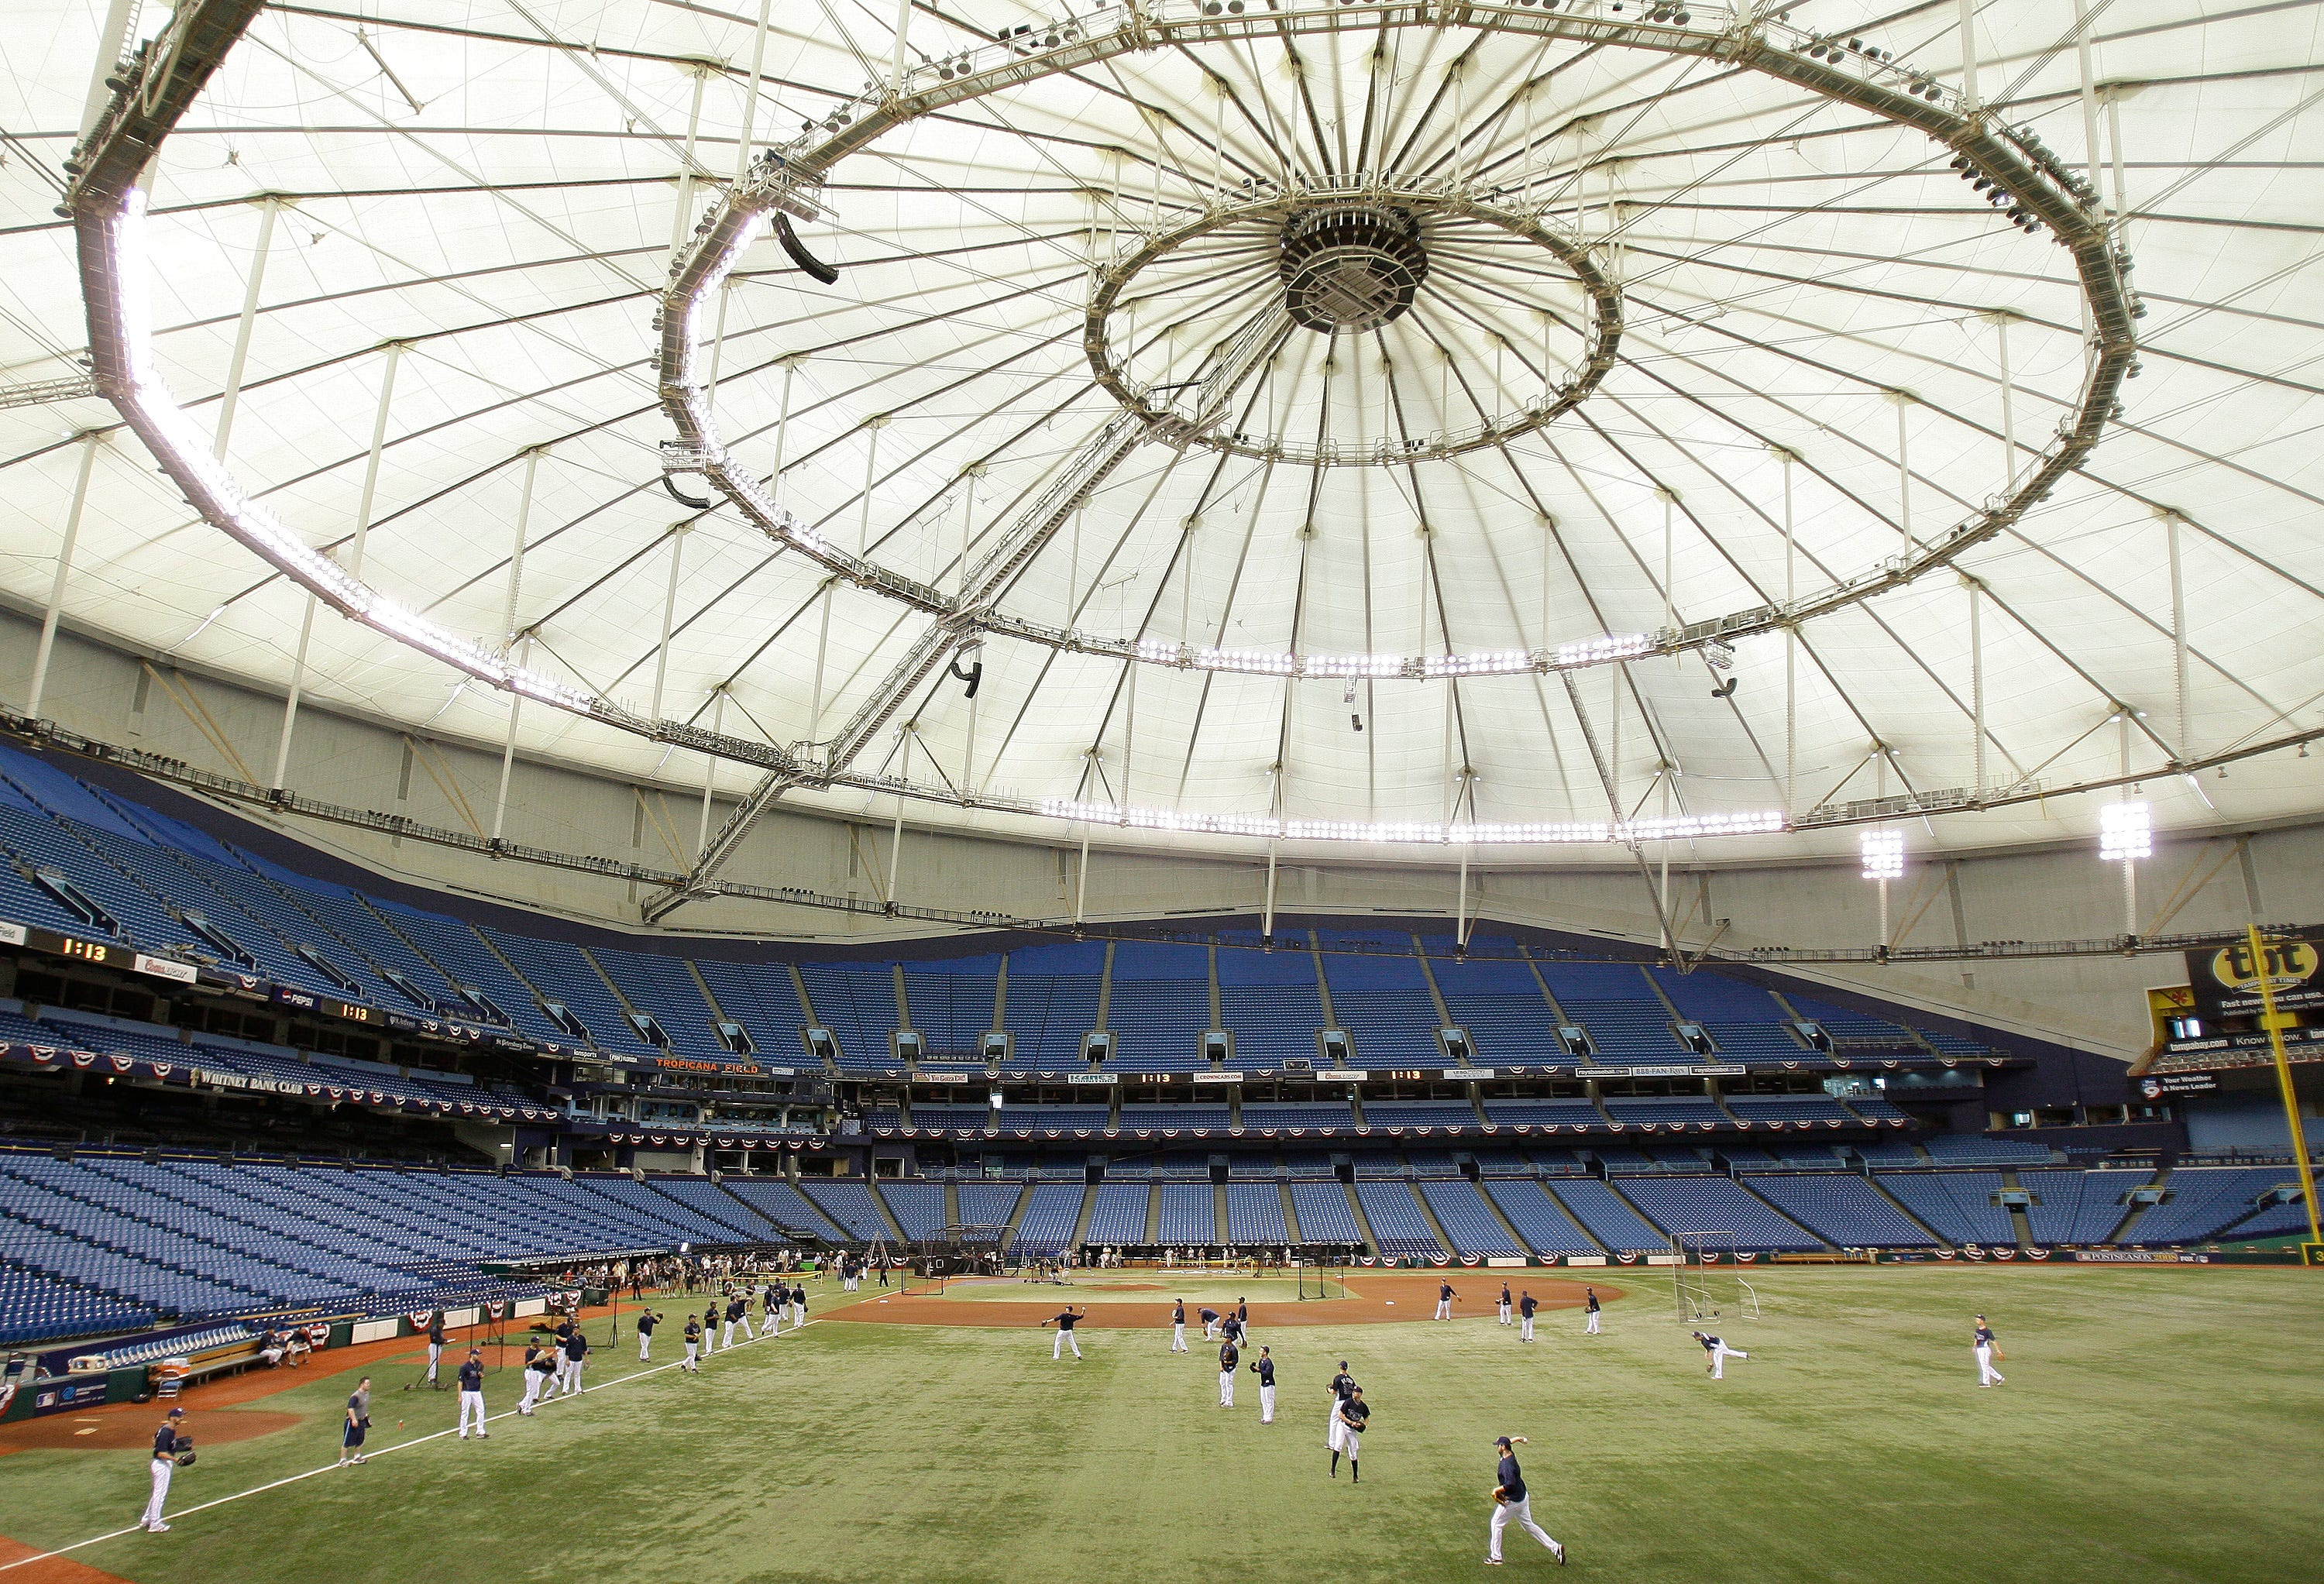 Tampa Bay Rays welcome more than a dozen players, manager to first workout at home field